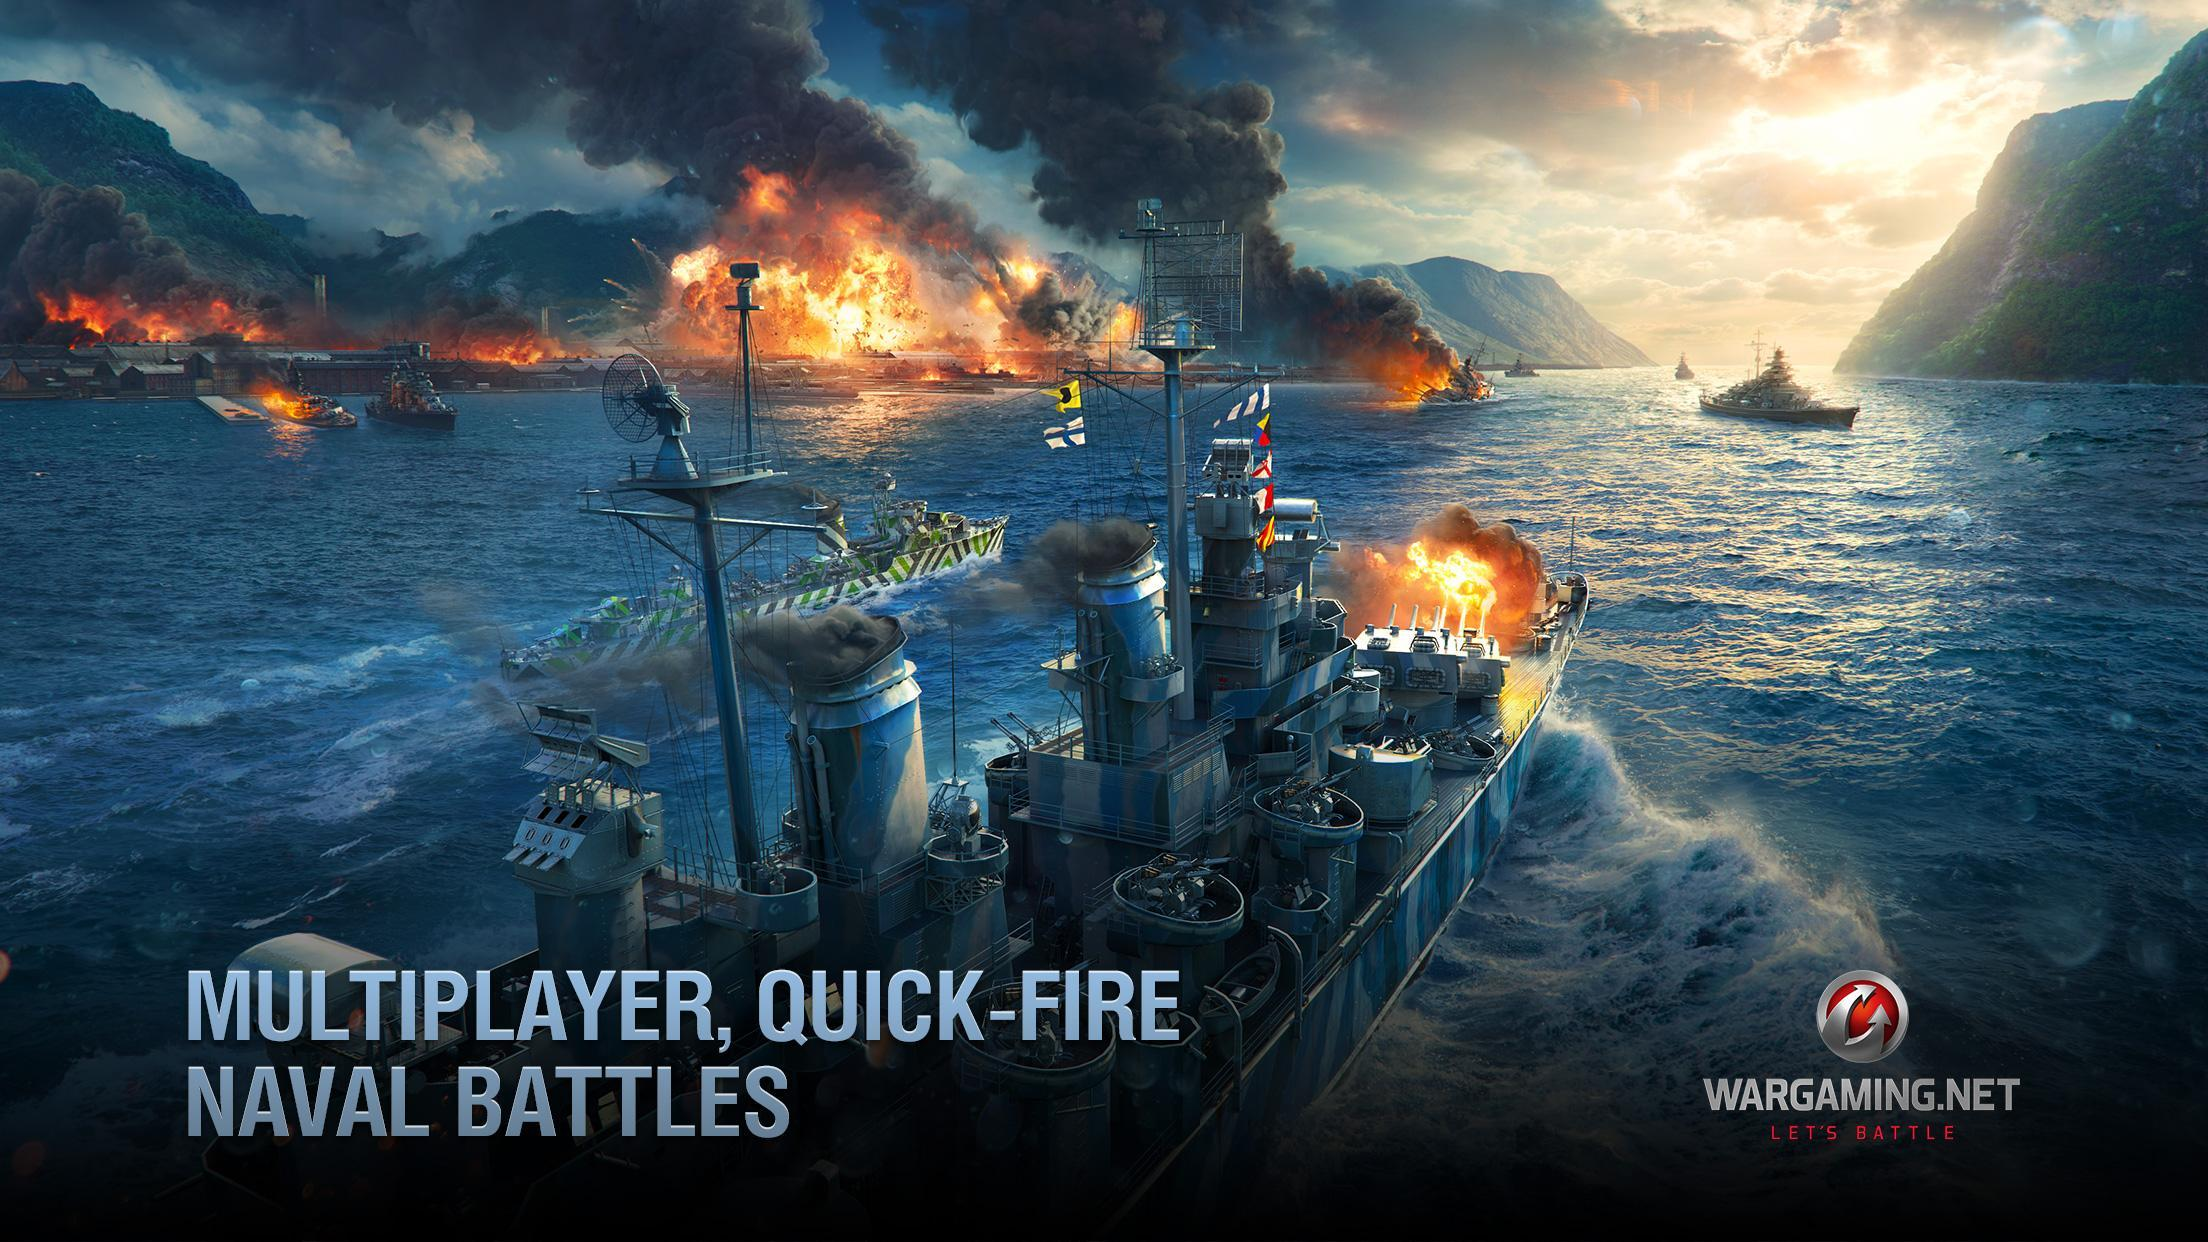 World of Warships Blitz: Gunship Action War Game 3.3.0 Screenshot 4